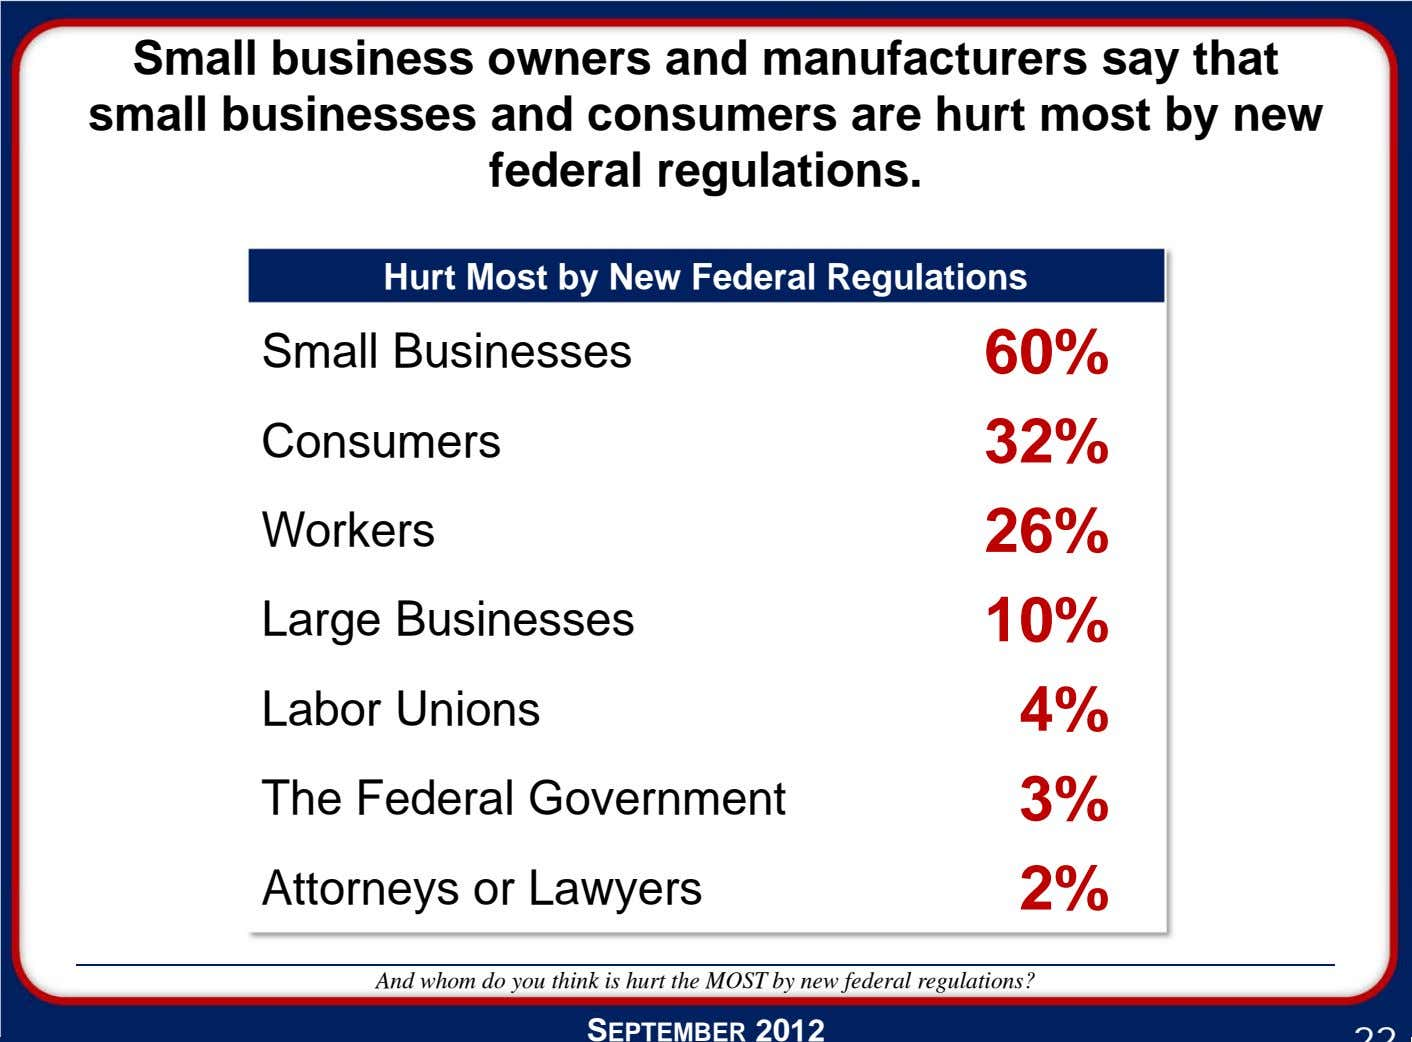 Small business owners and manufacturers say that small businesses and consumers are hurt most by